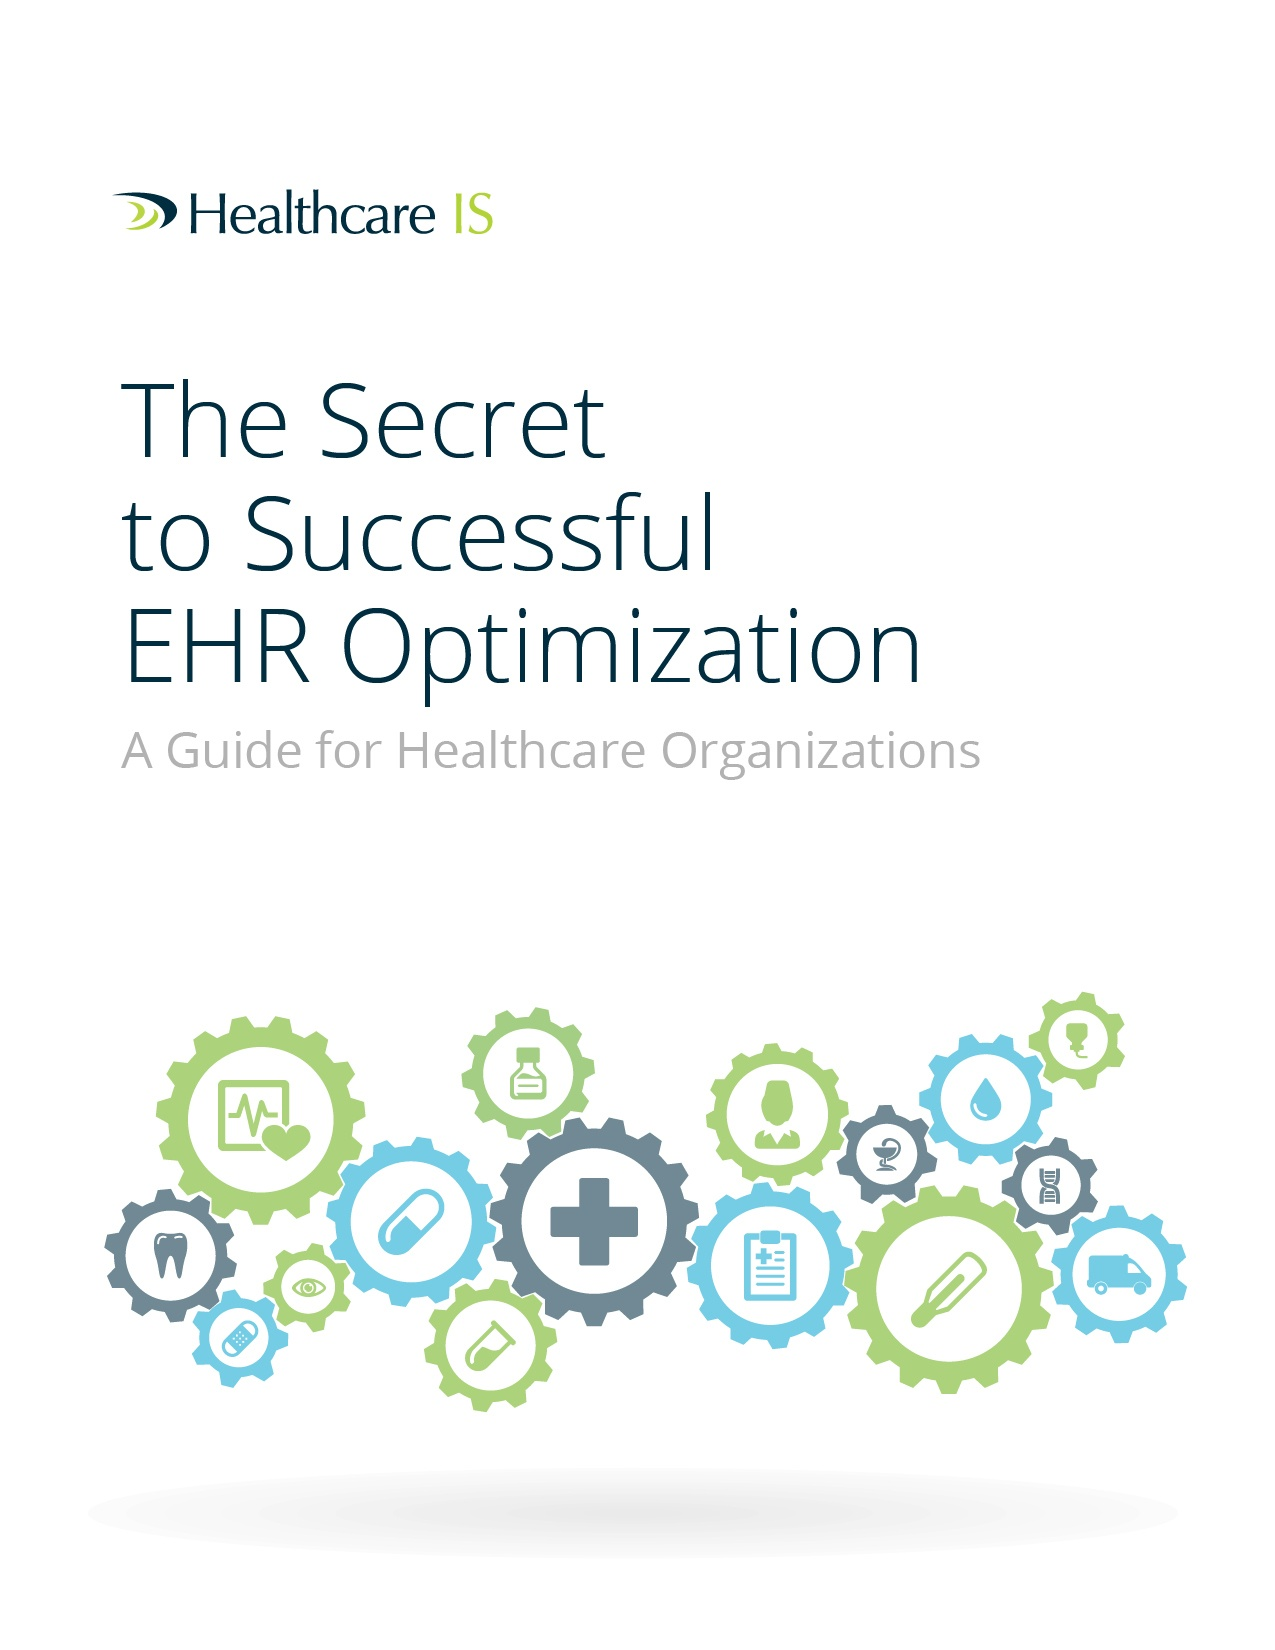 COVER_The_Secret_to_EHR_Optimization.jpg